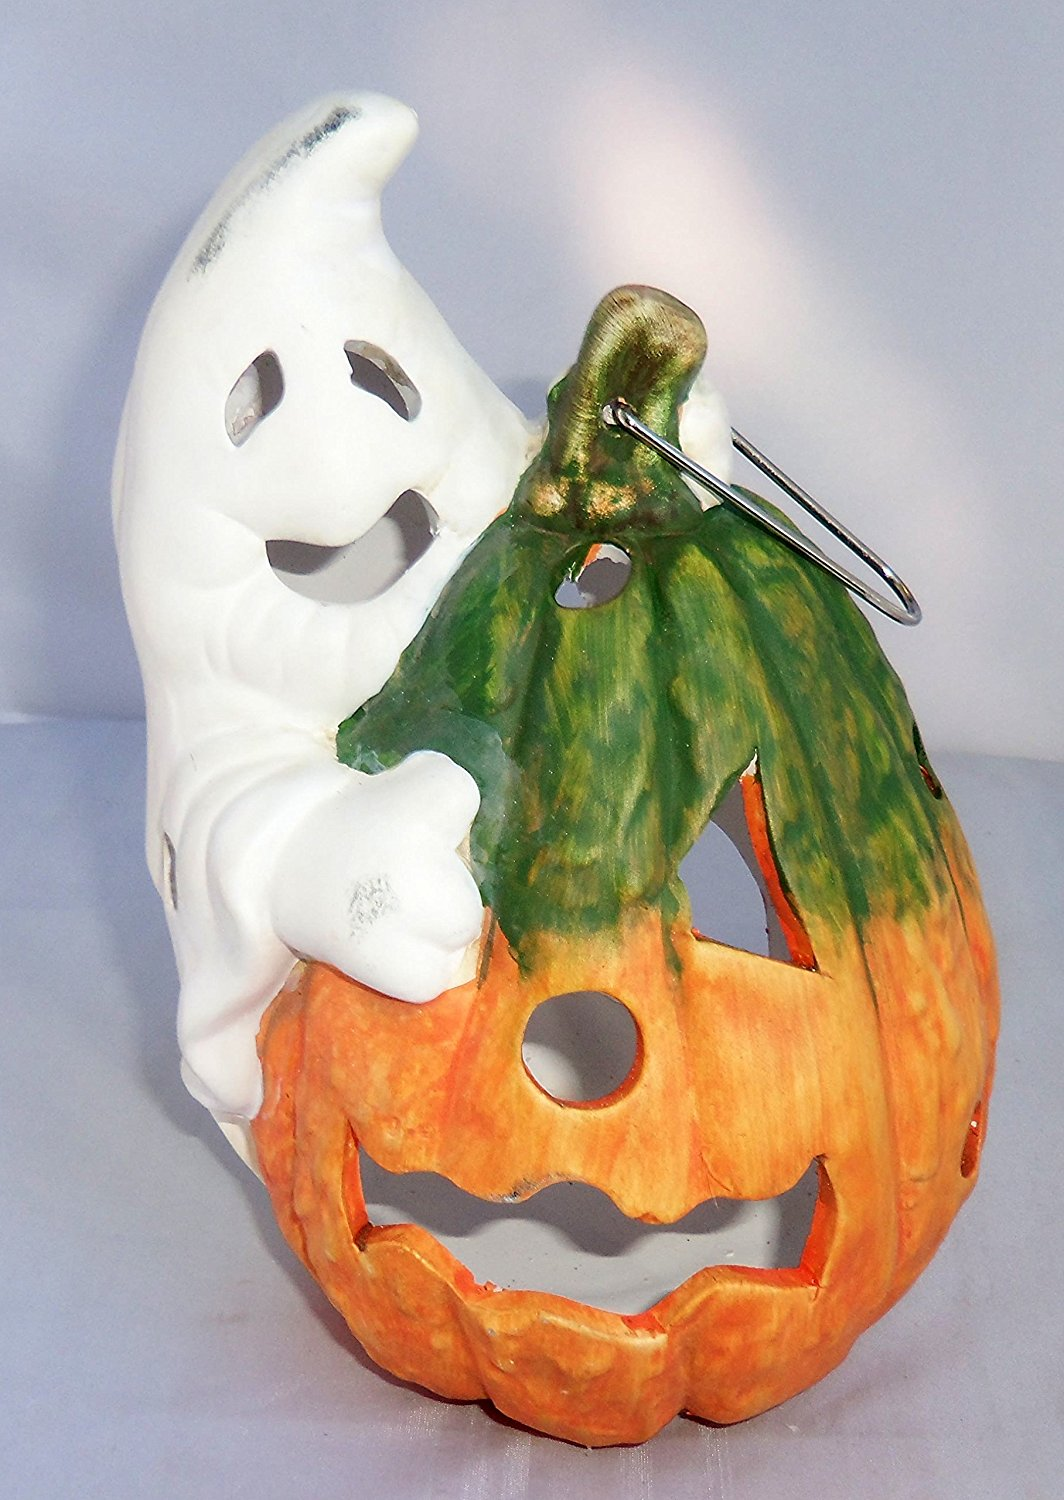 Buy Halloween Ceramic Clay Tealight Holder Lantern Ghost Pumpkin 8 With Tea Light Candle In Cheap Price On Alibaba Com